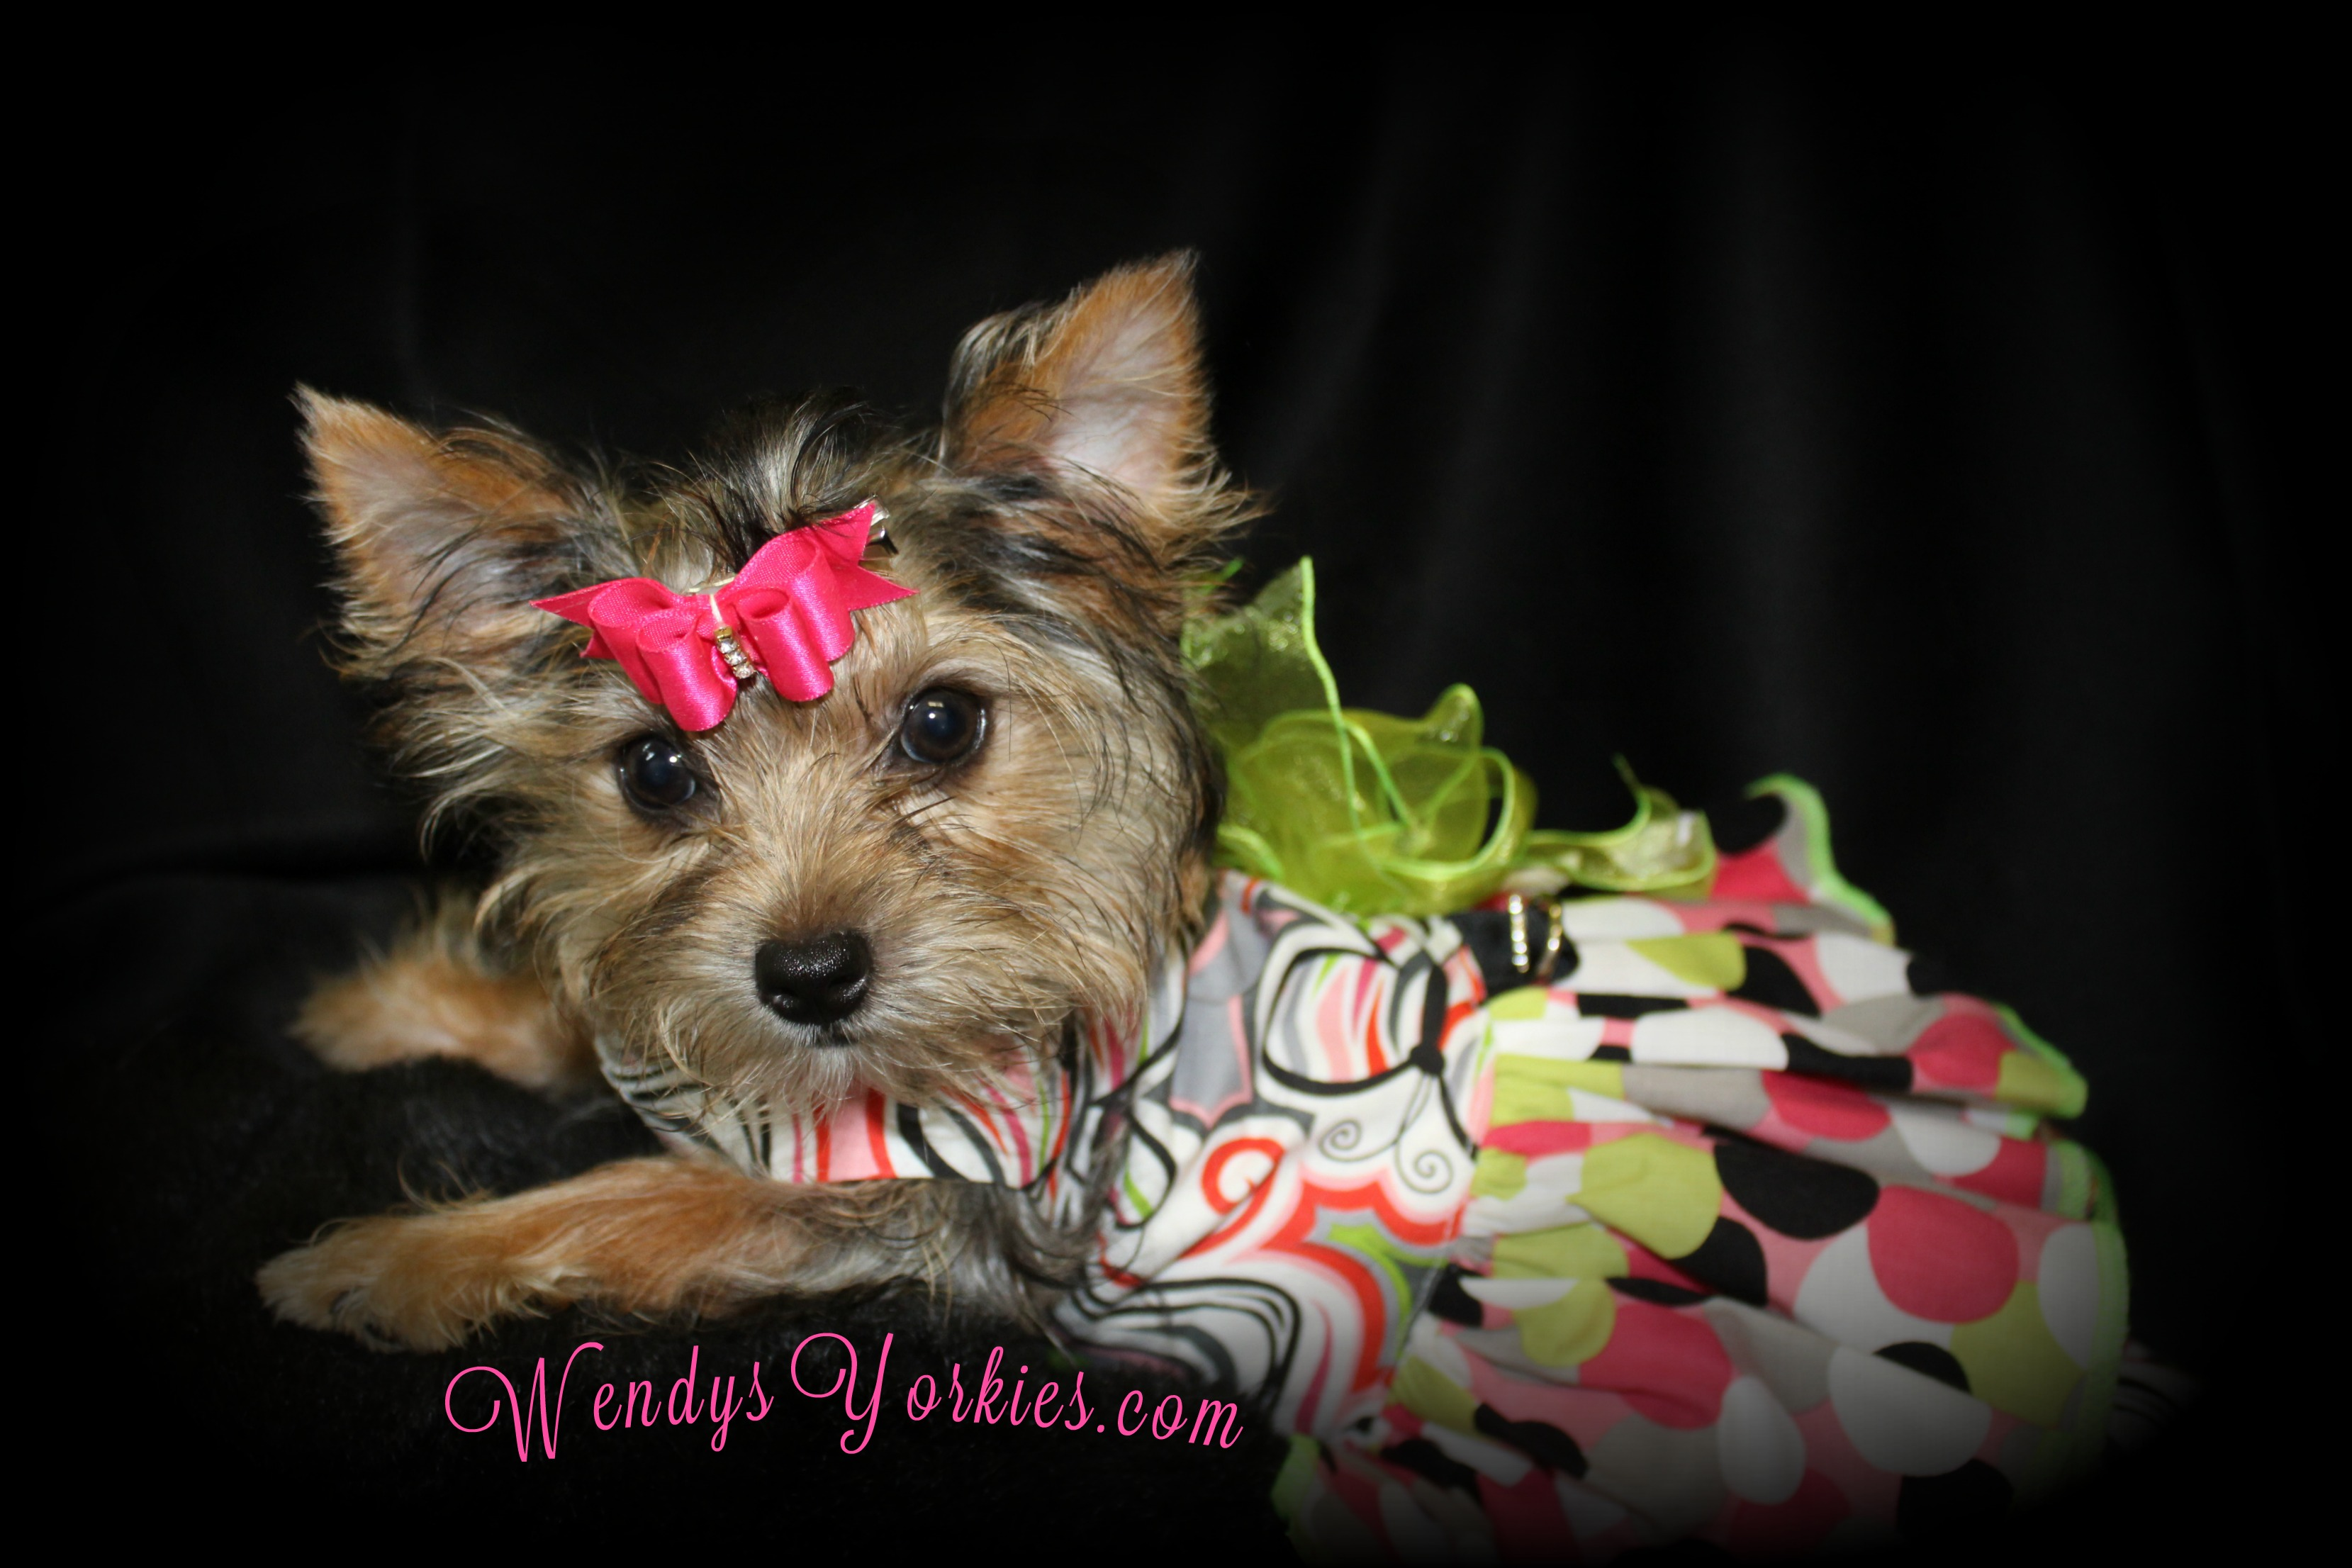 Teacup Yorkie puppy for sale, WendysYorkies.com, Blossom